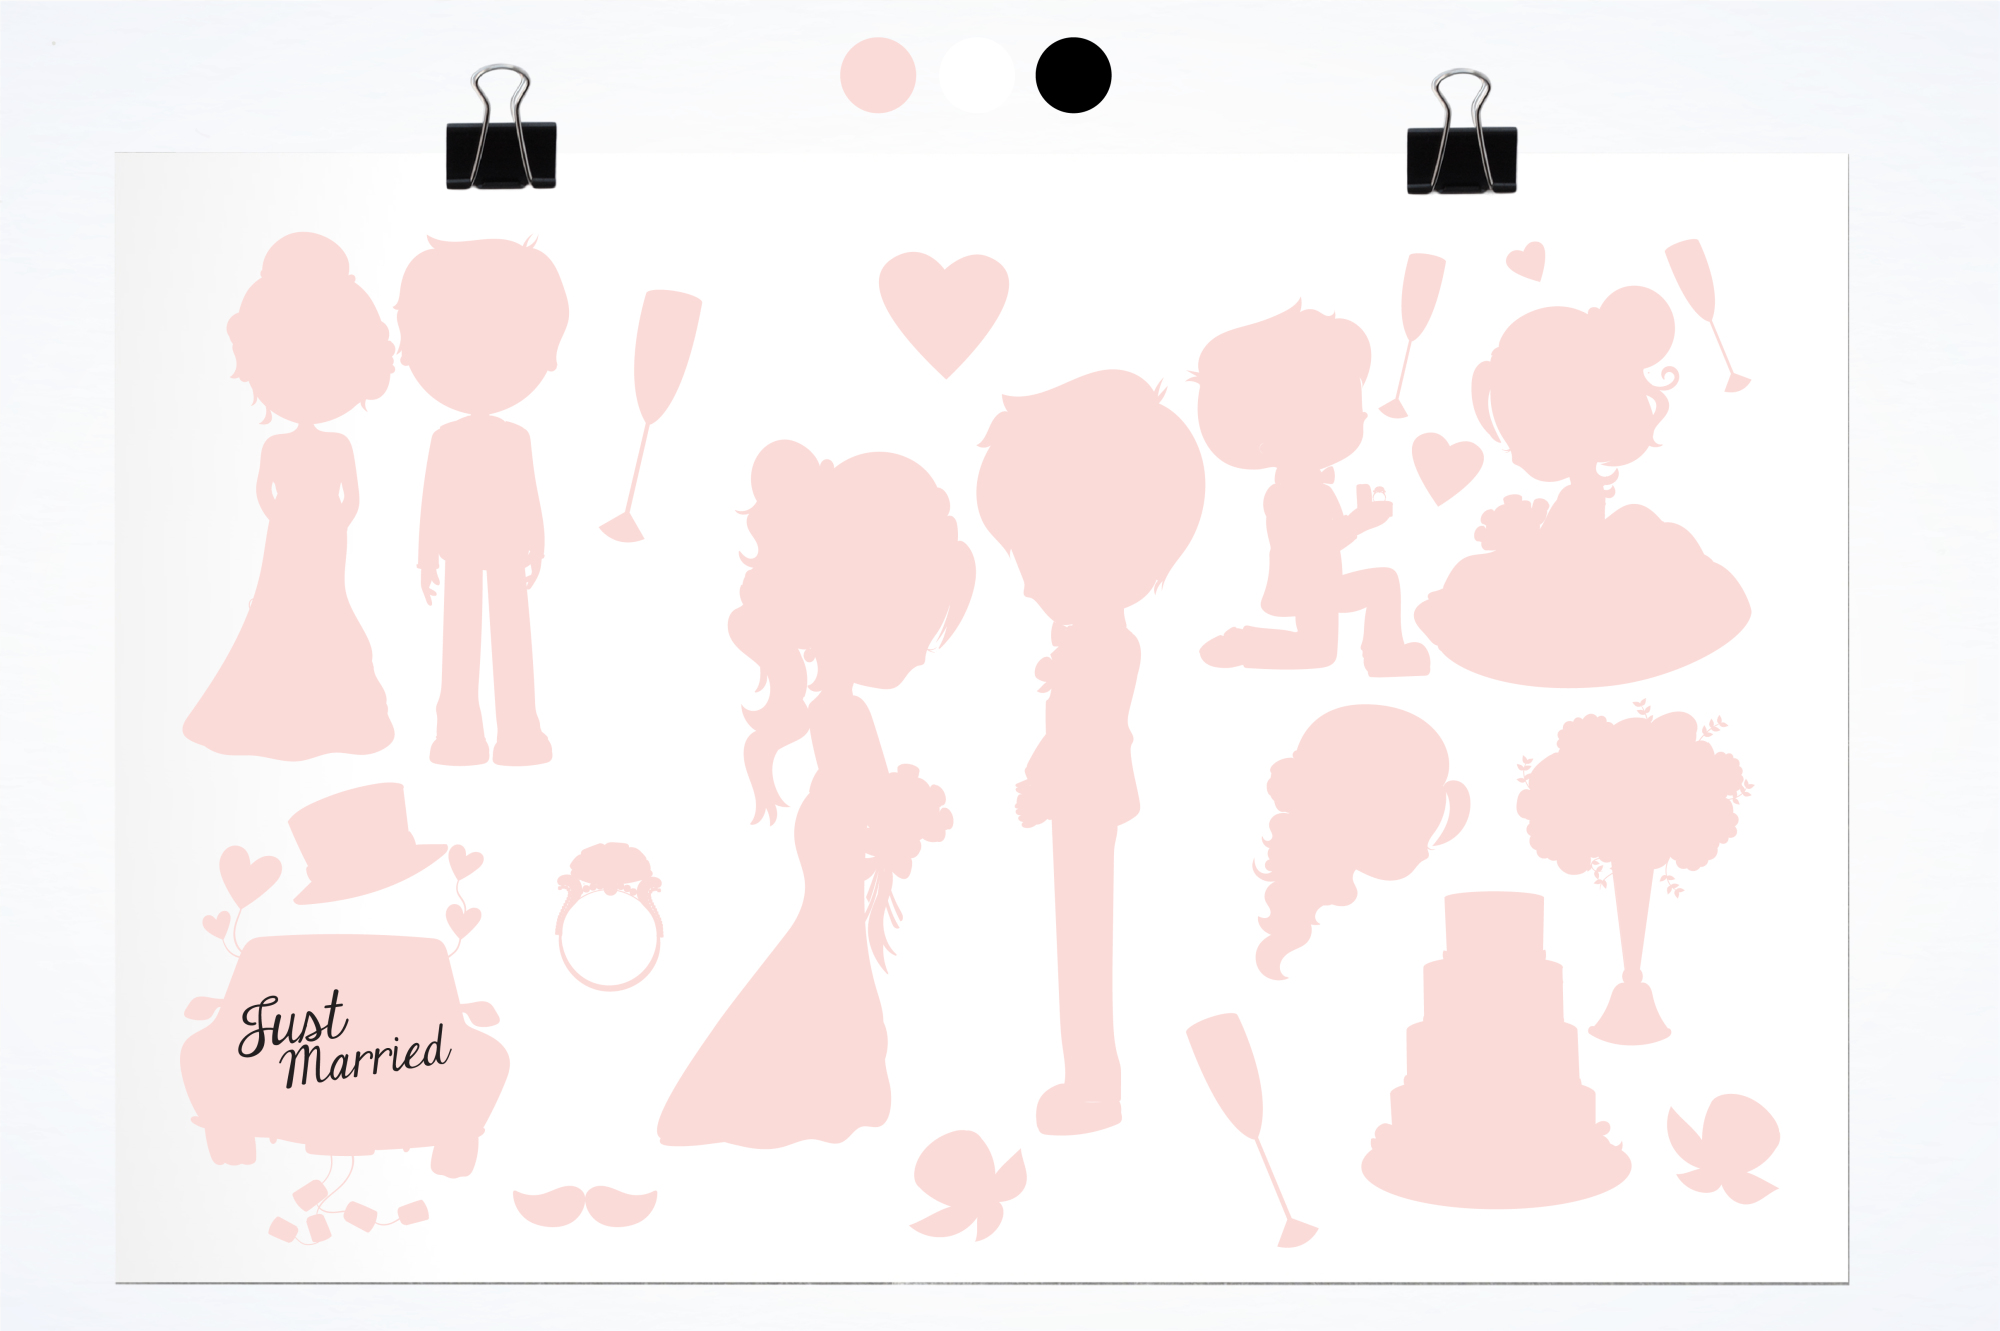 Wedding Silhouette graphics and illustrations example image 2